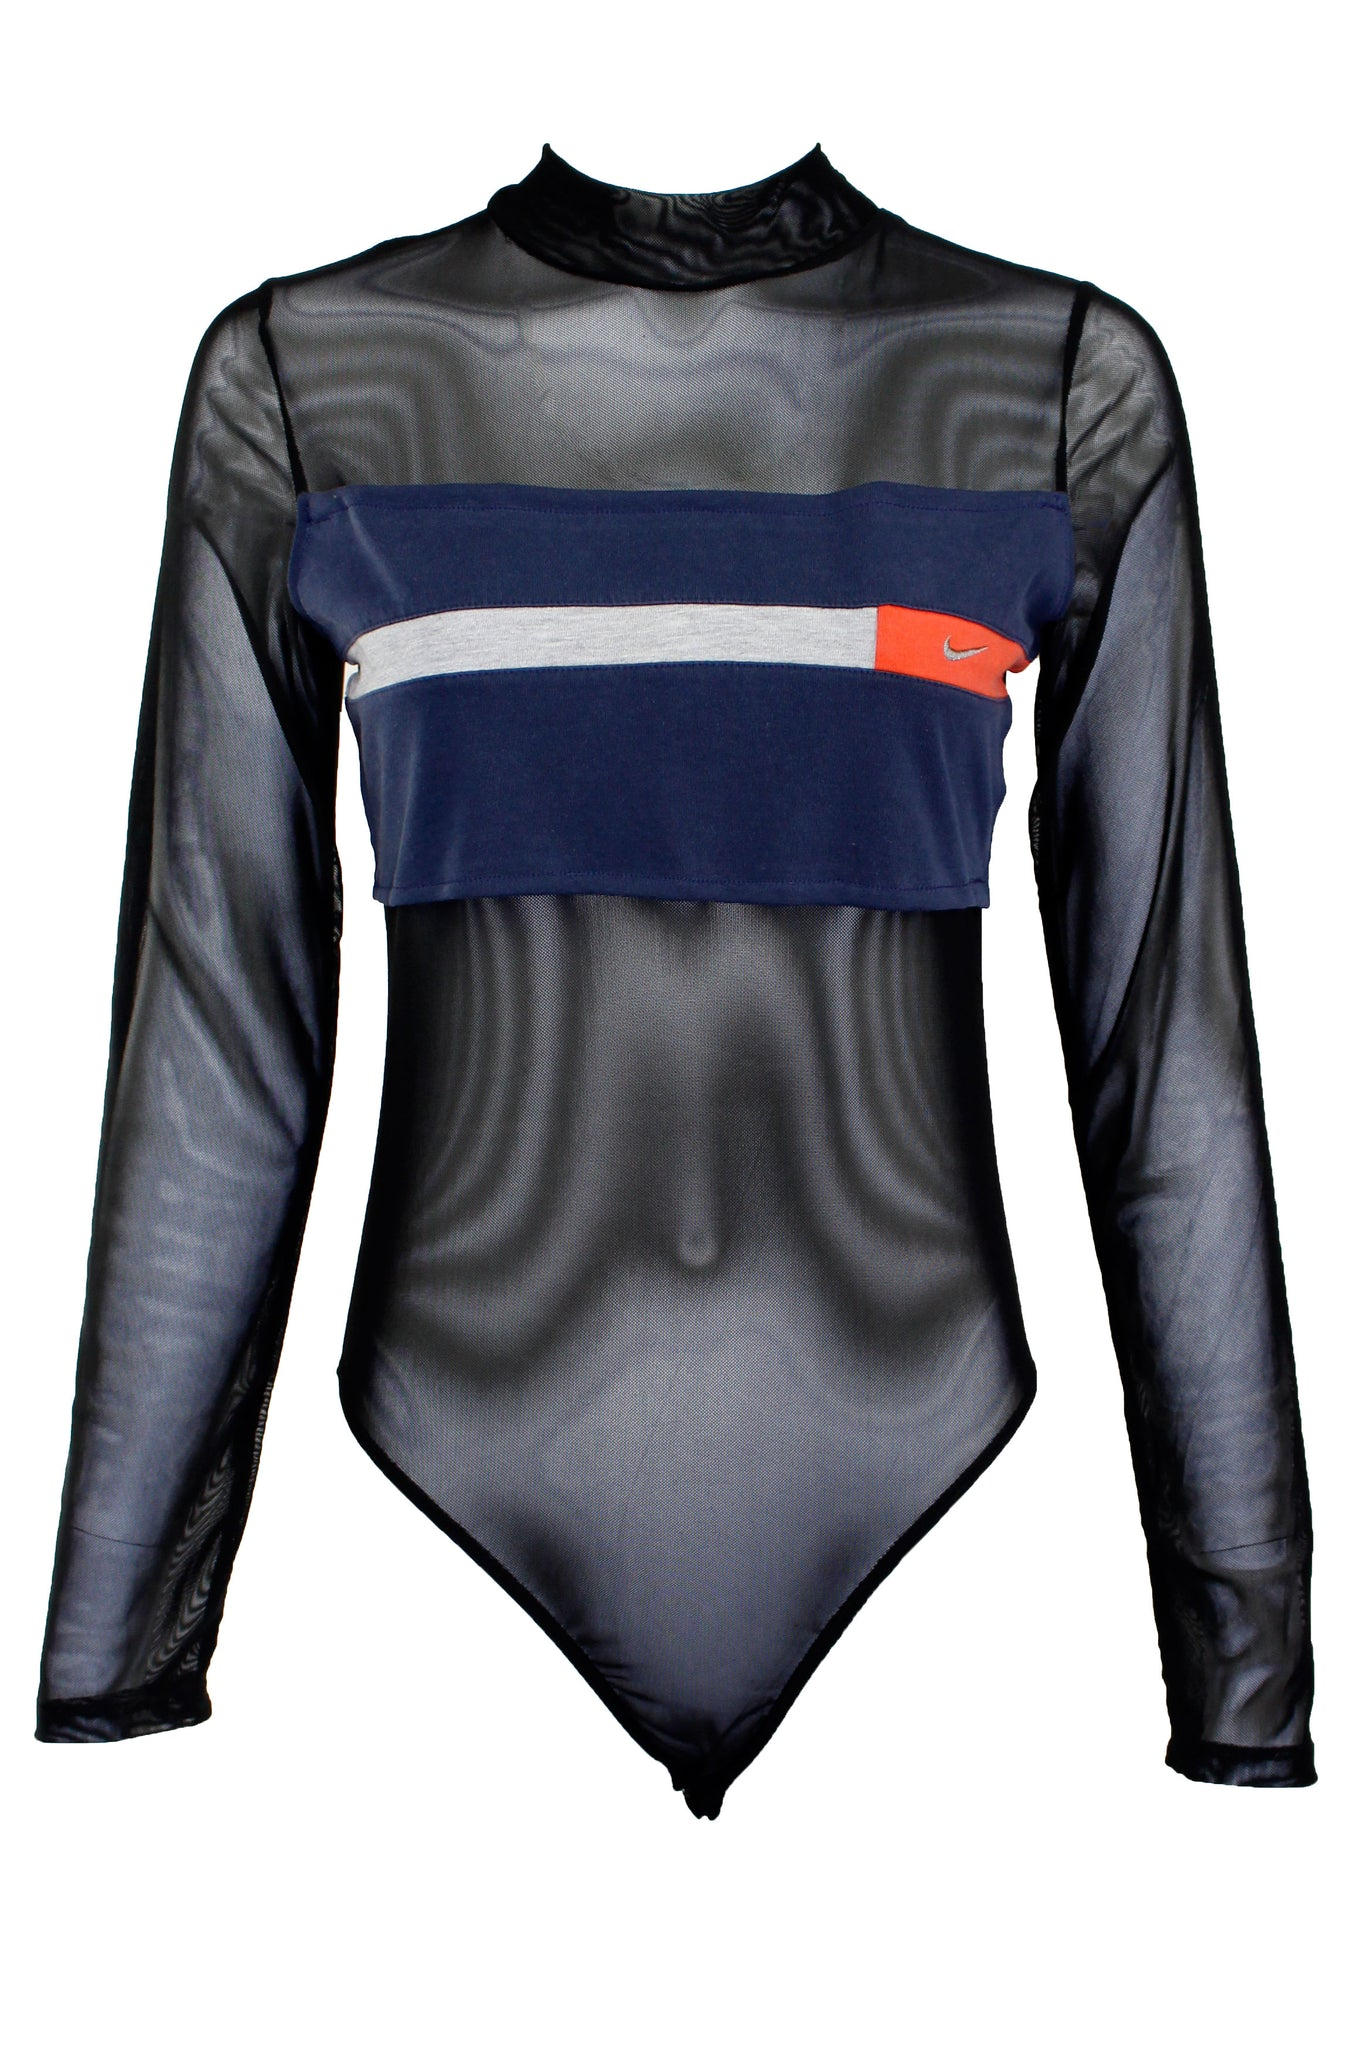 Reworked Vintage Nike Stripe Bodysuit